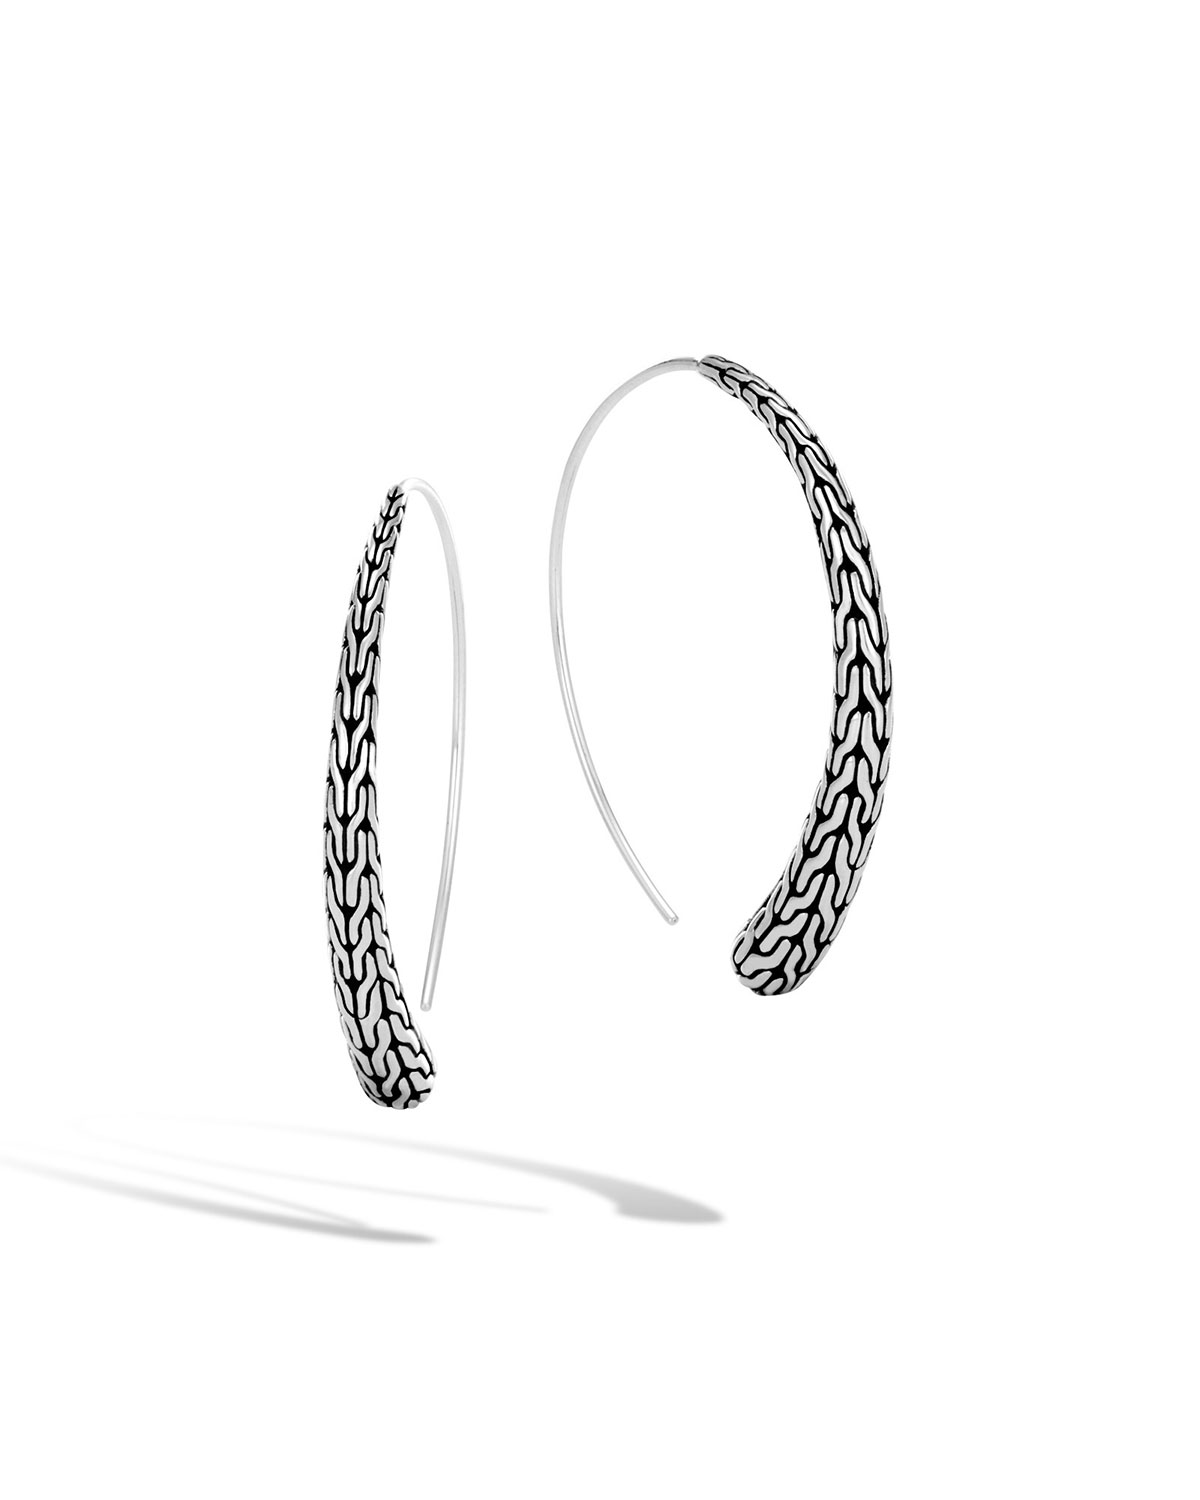 Clic Chain Silver Medium Thread Through Hoop Earrings